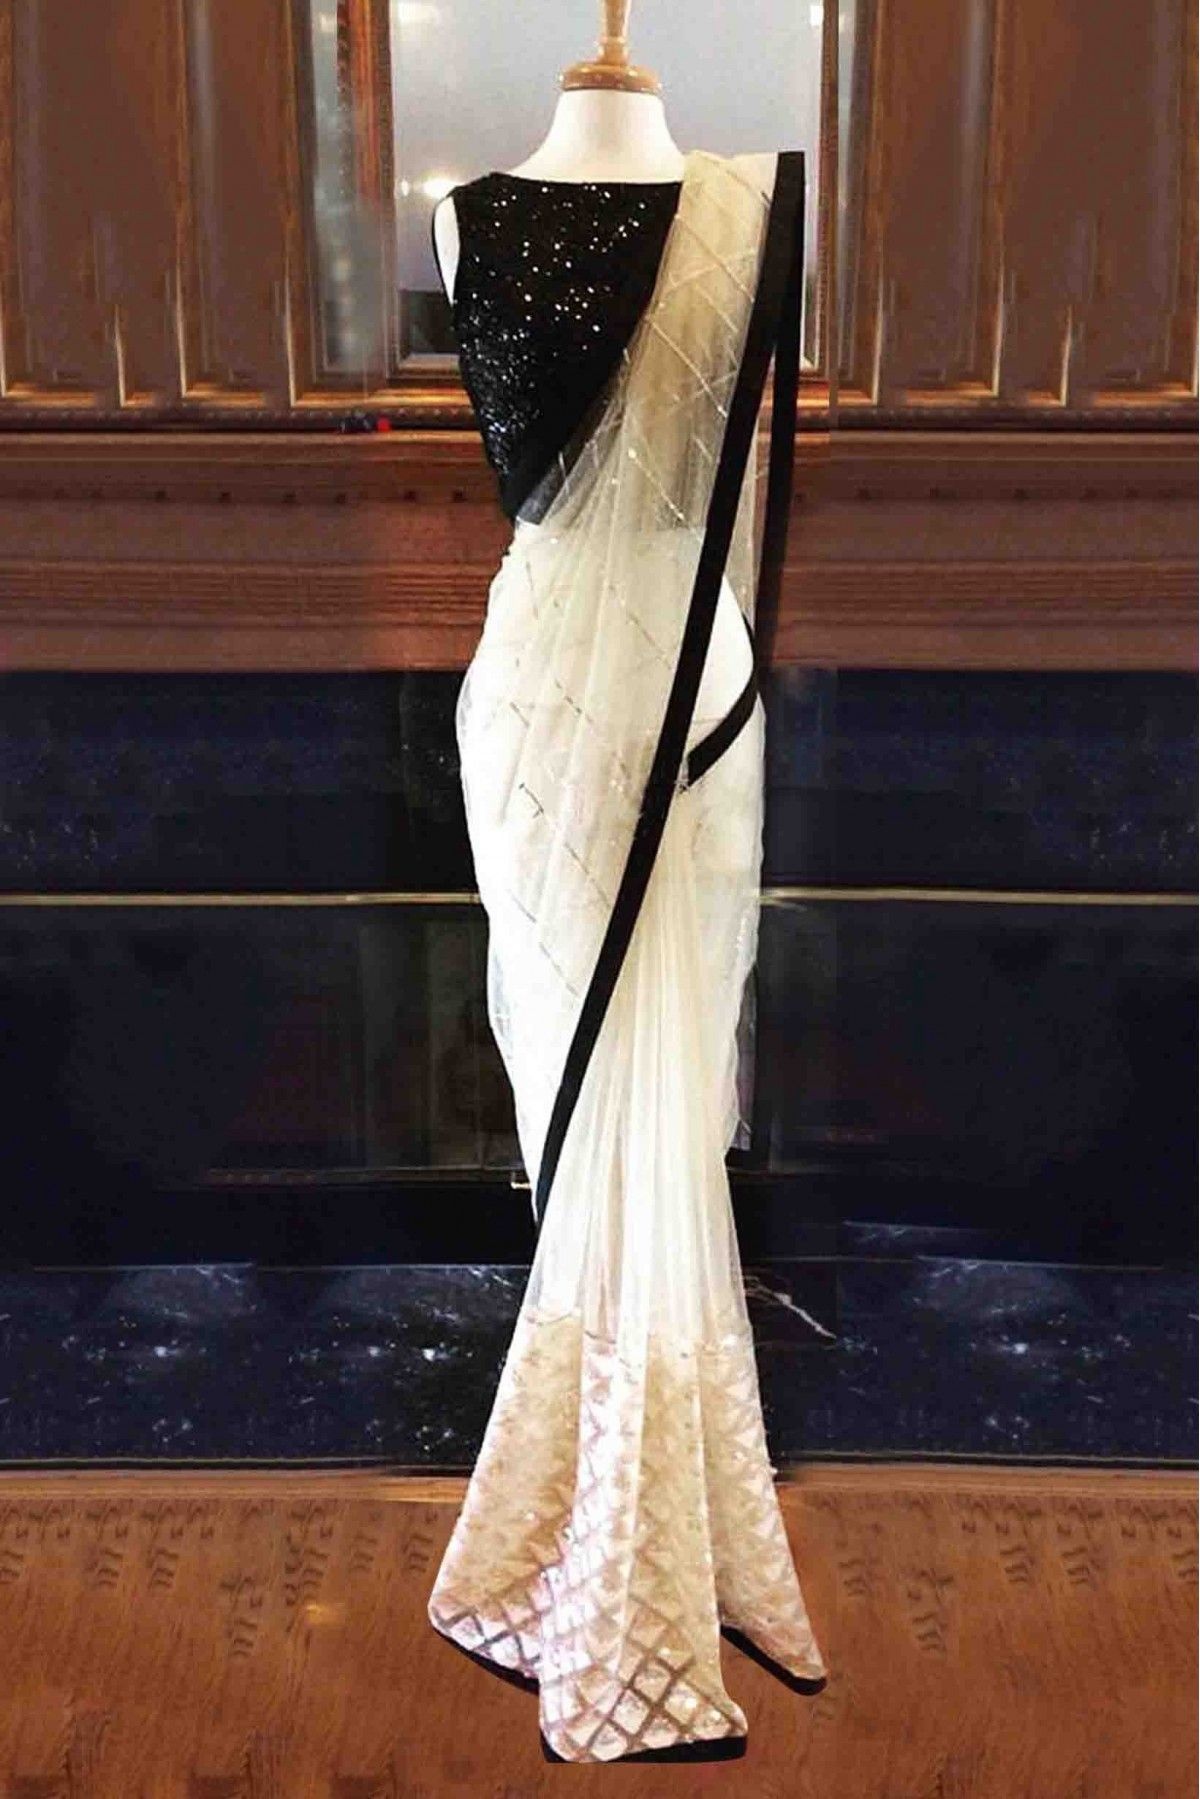 75279271d5 Buy Nylon Mono Net Saree In White And Black Colour for women @  ninecolours.com. Worldwide Free Shipping Available!